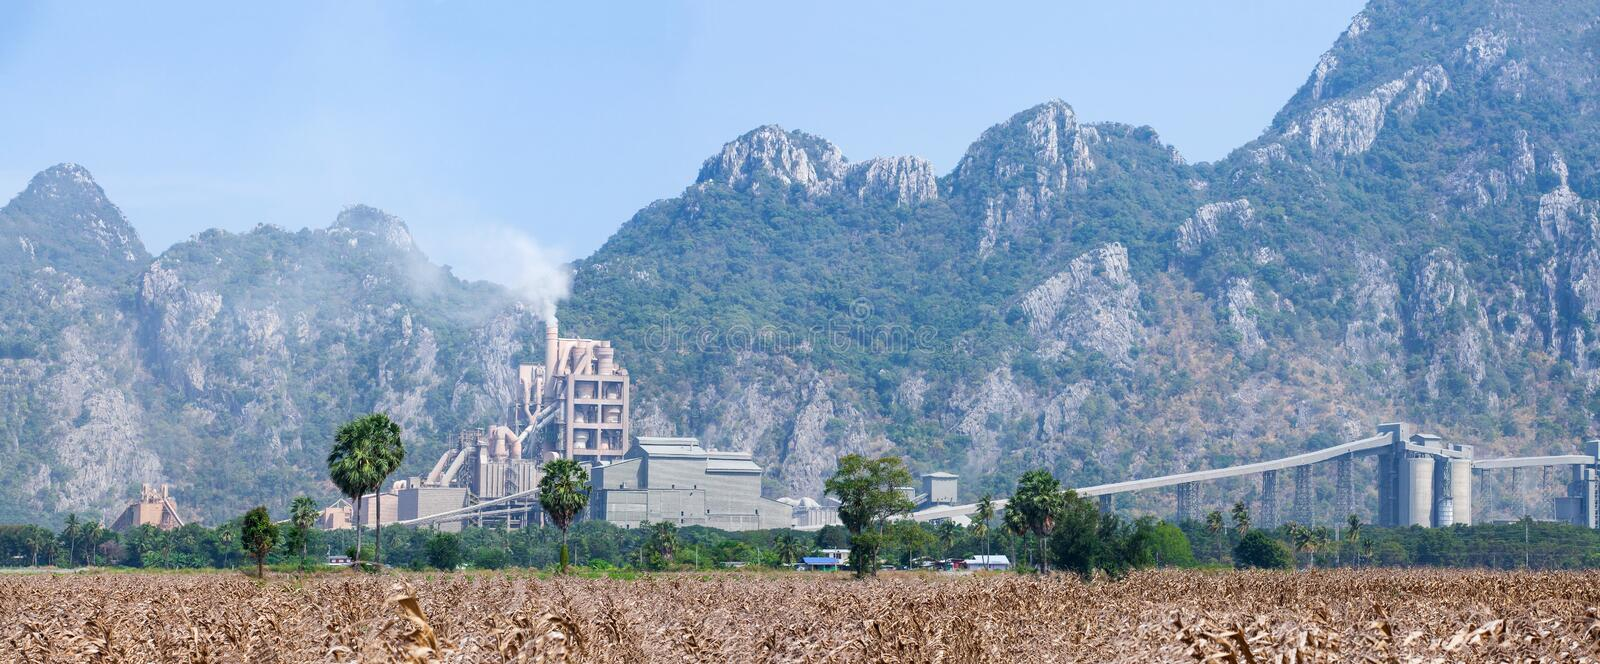 Panorama landscape of cement factory in thailand, corn fields foregrounds, limestone mountain range backgrounds royalty free stock images